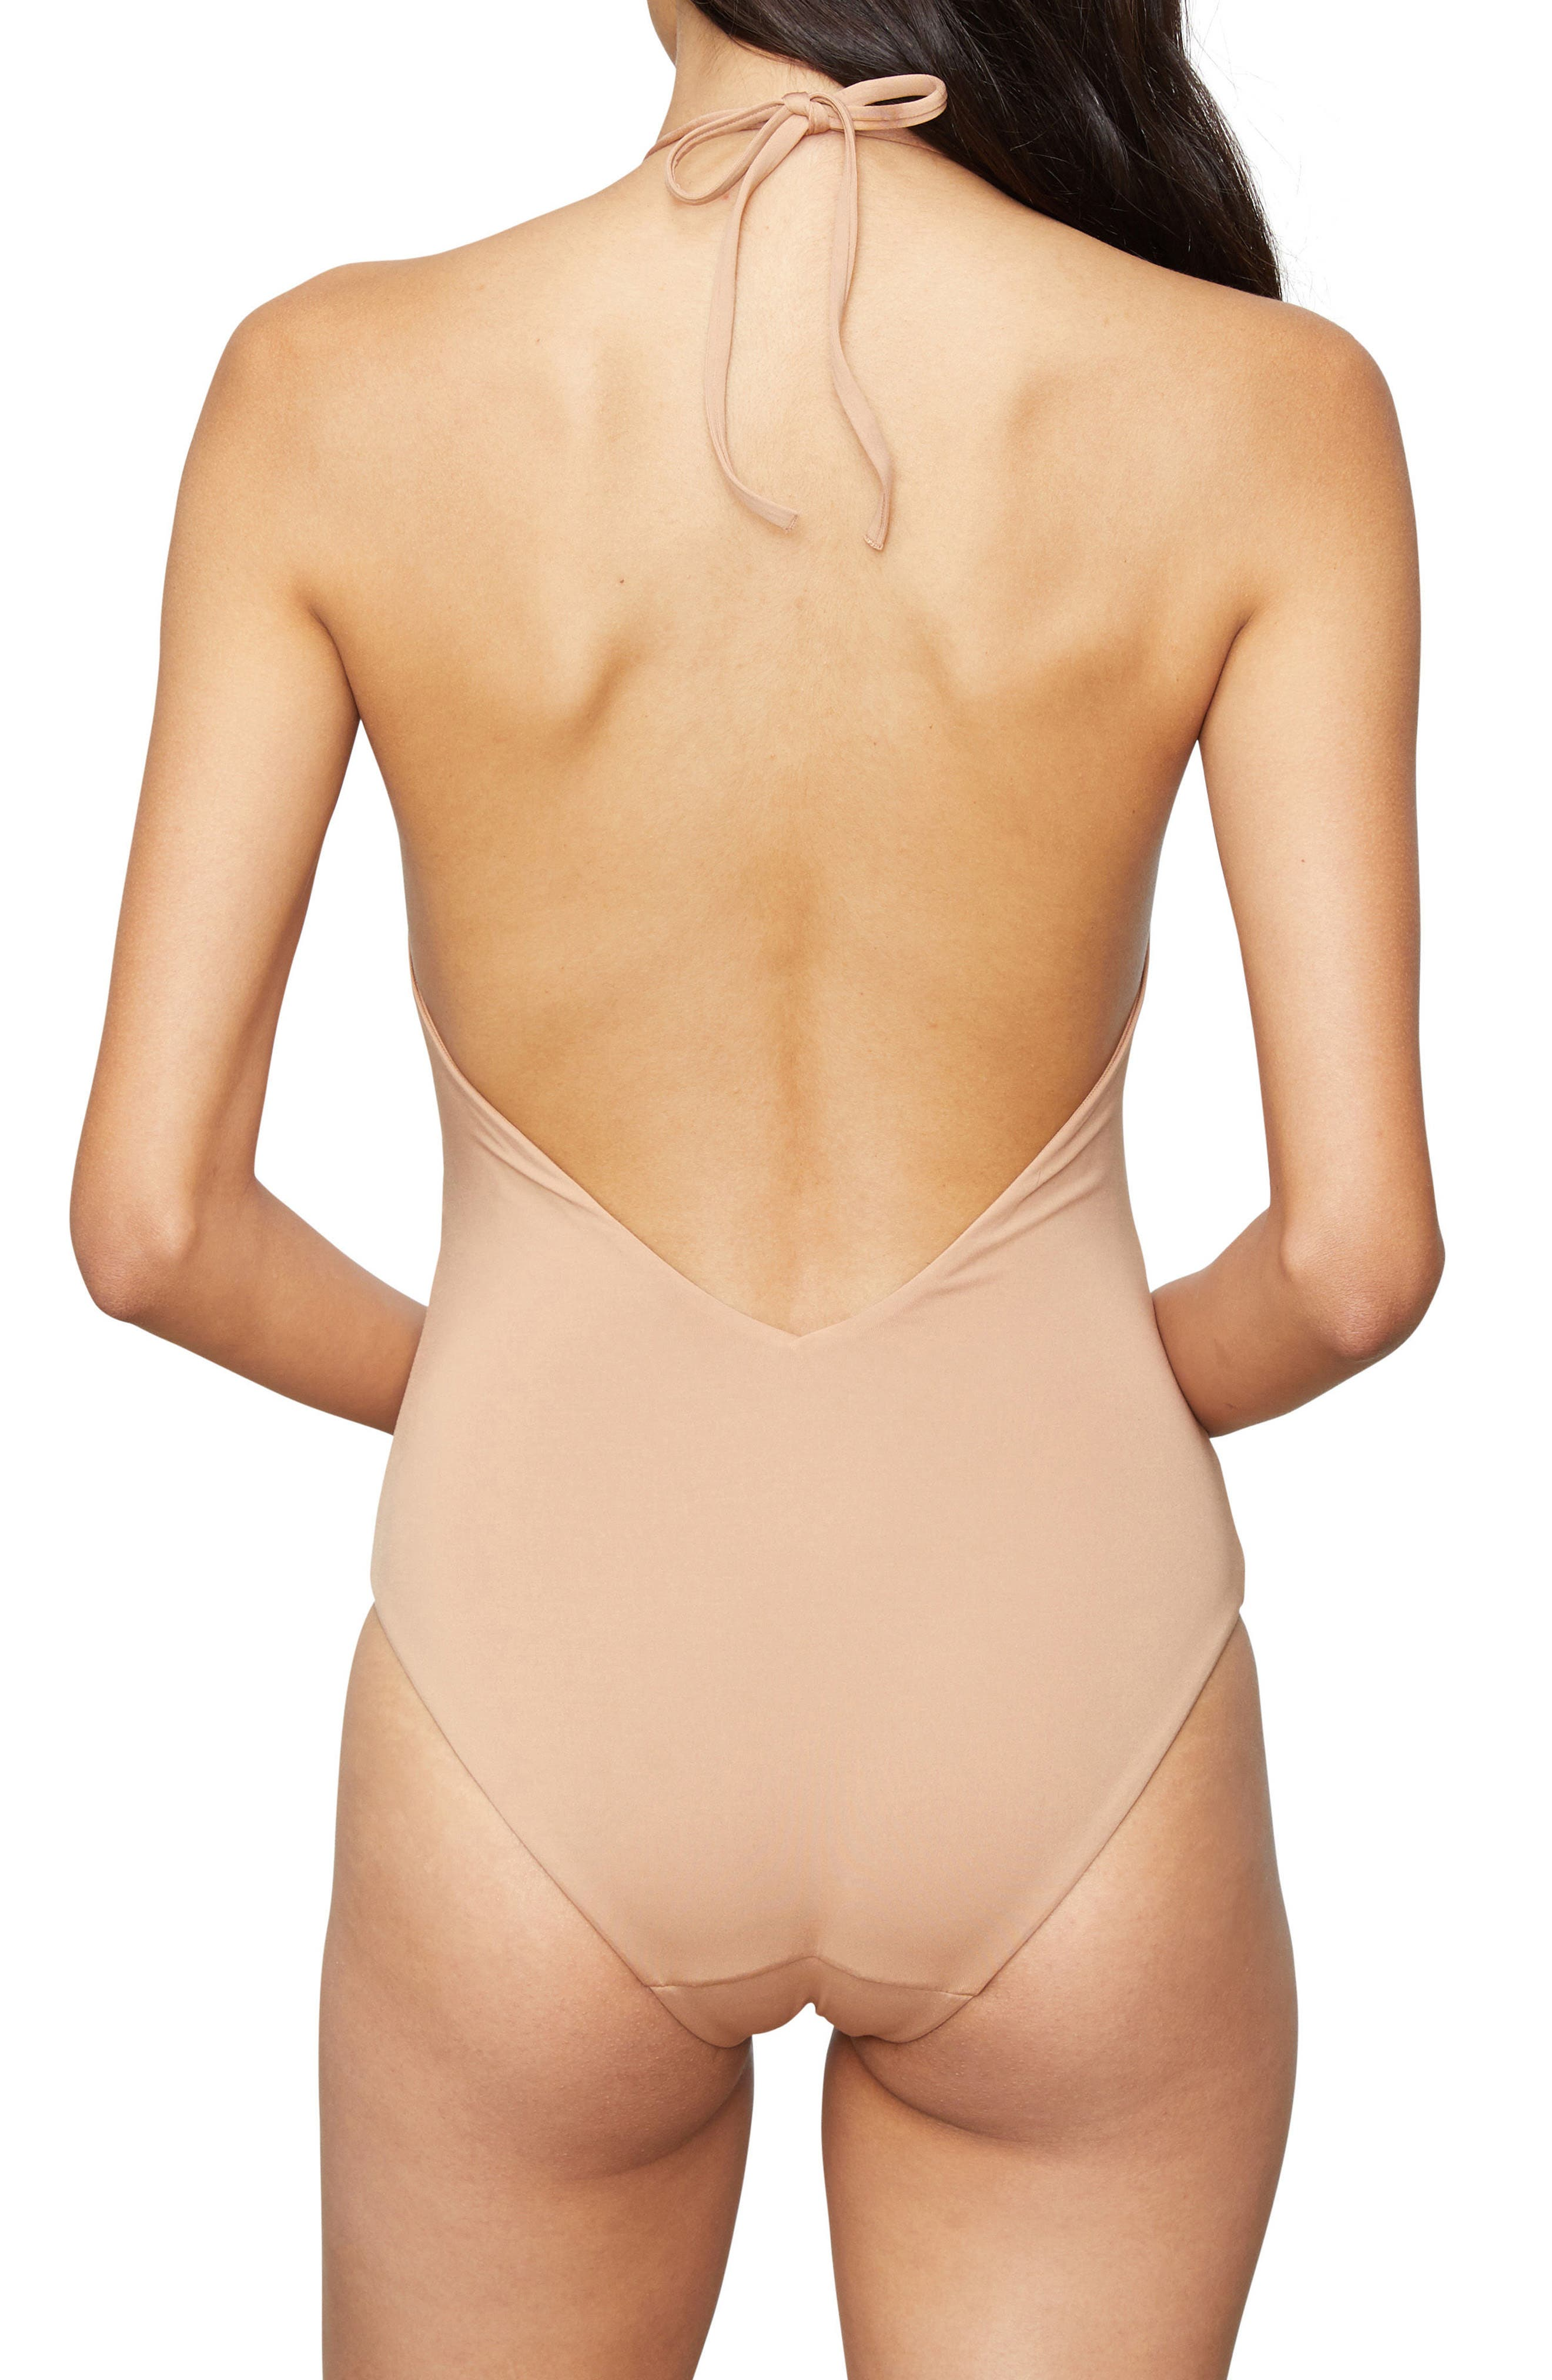 Nina One-Piece Halter Swimsuit,                             Alternate thumbnail 2, color,                             210